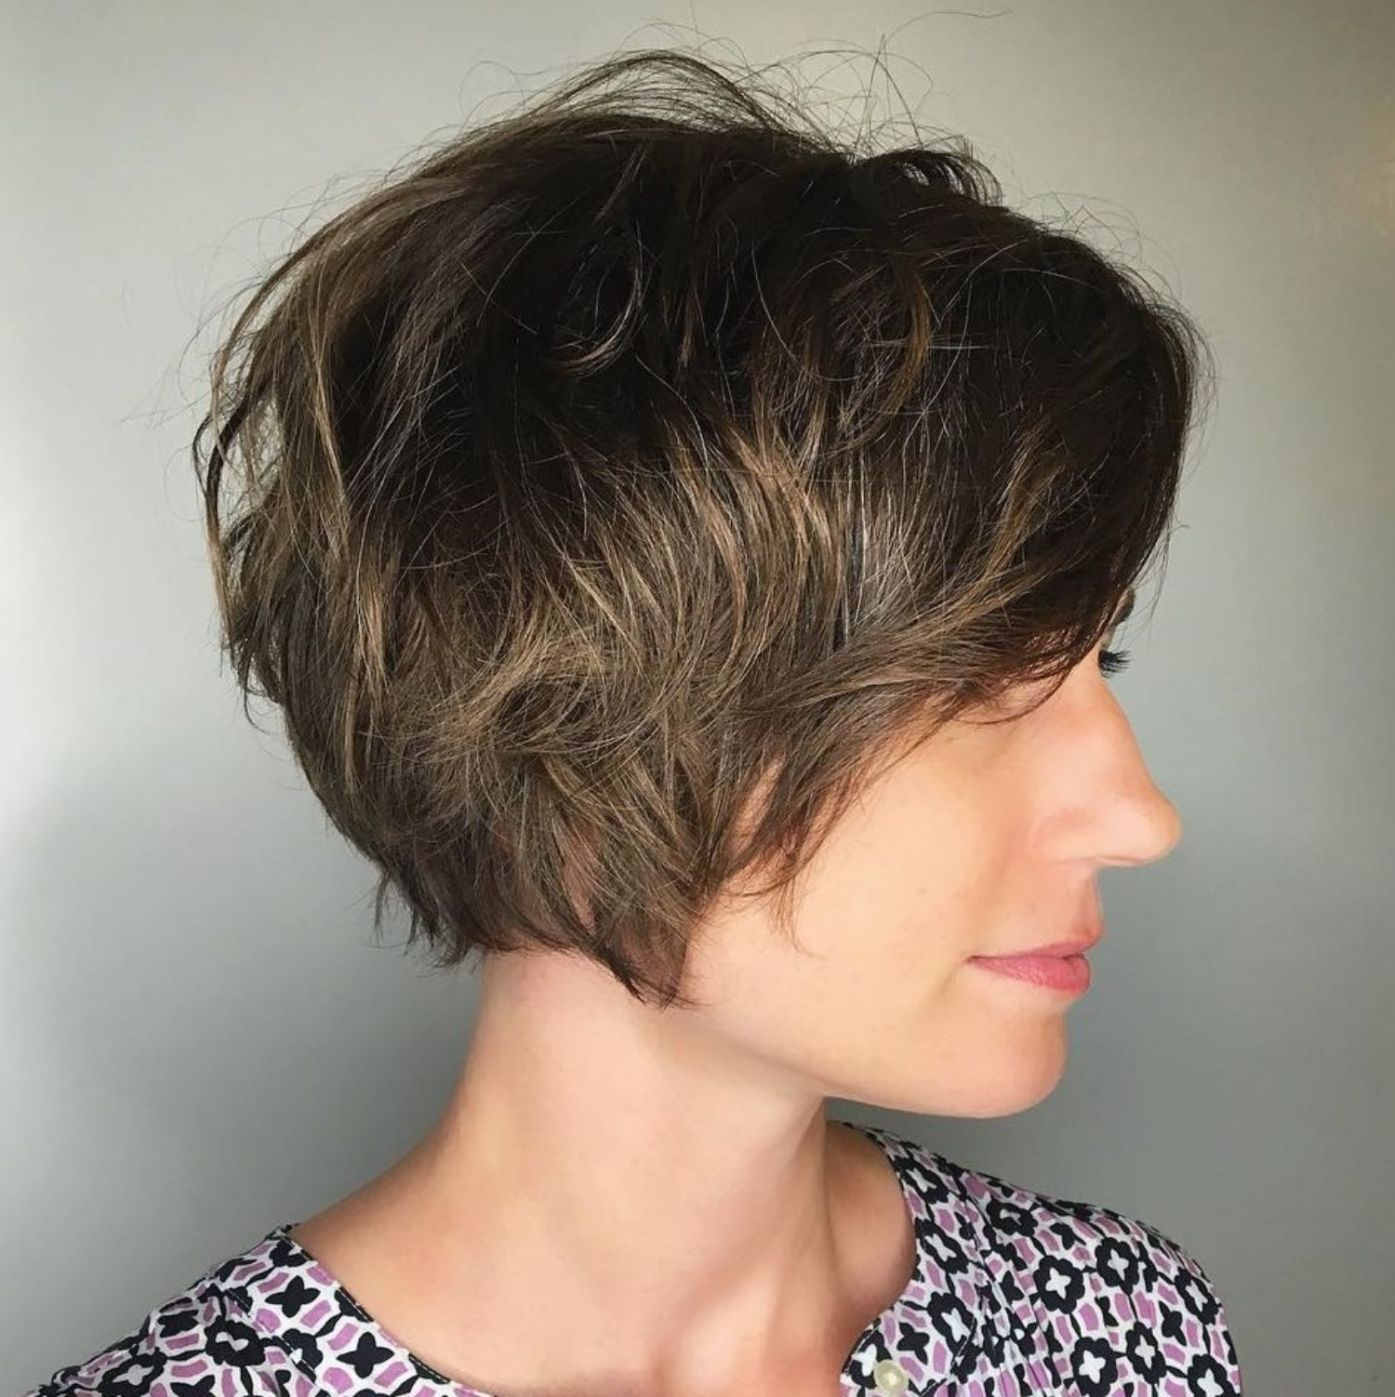 60 Classy Short Haircuts And Hairstyles For Thick Hair In 2020 Thick Hair Styles Short Messy Haircuts Short Hairstyles For Thick Hair